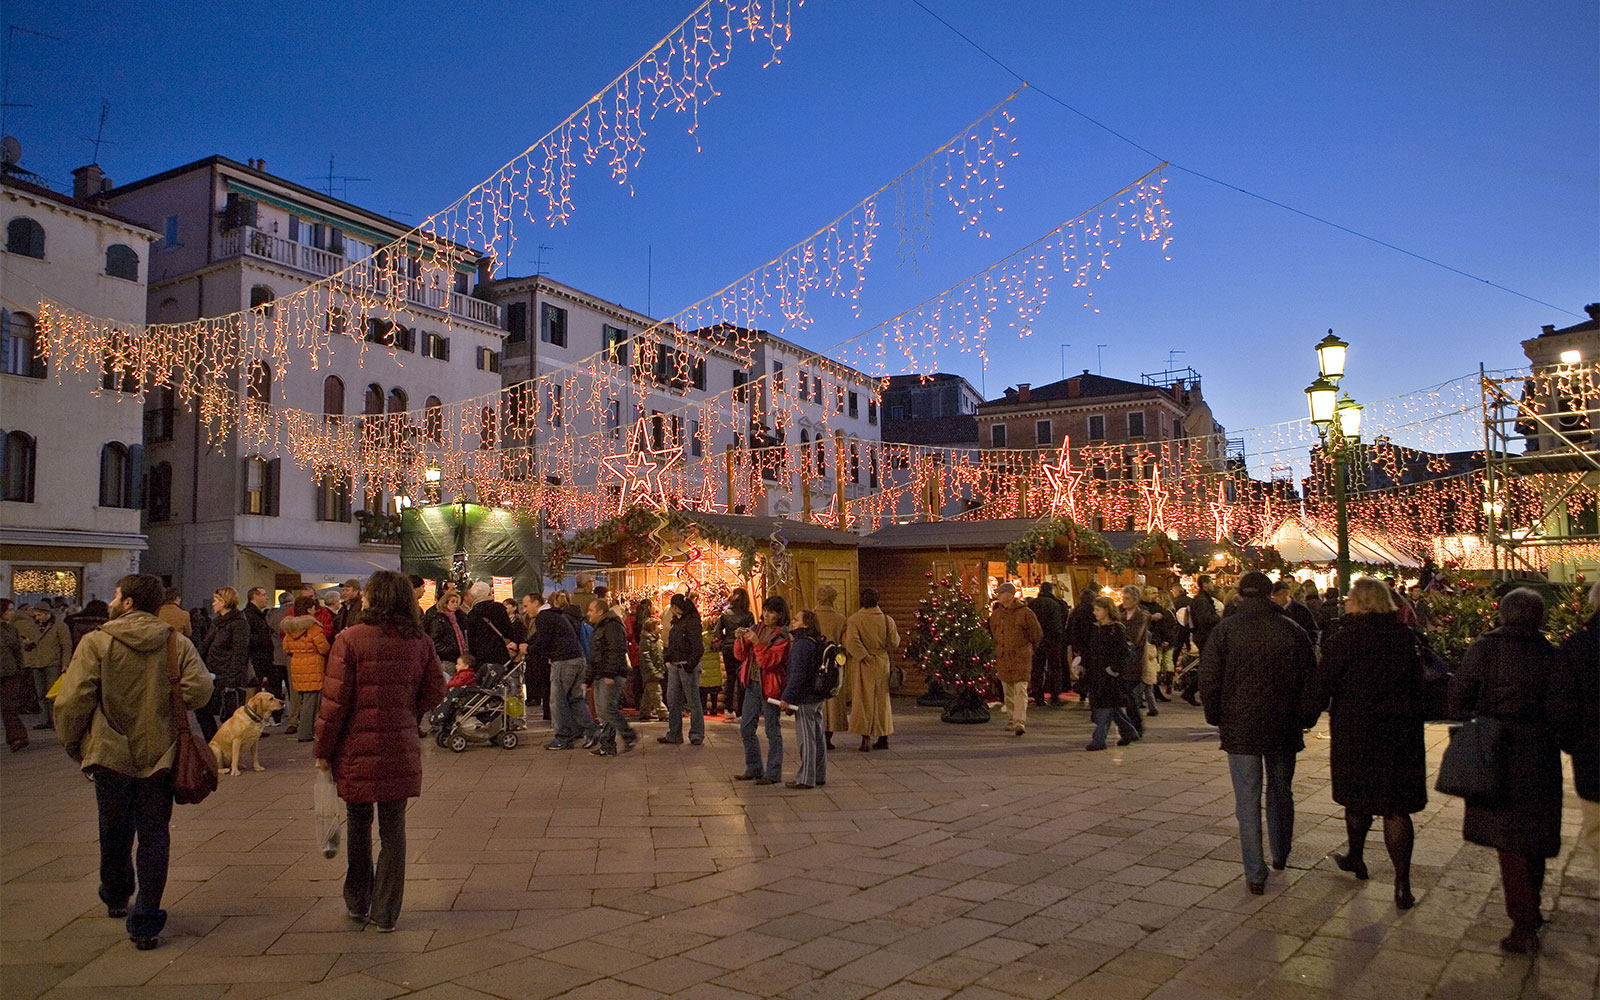 Best Places to Spend Christmas: Venice